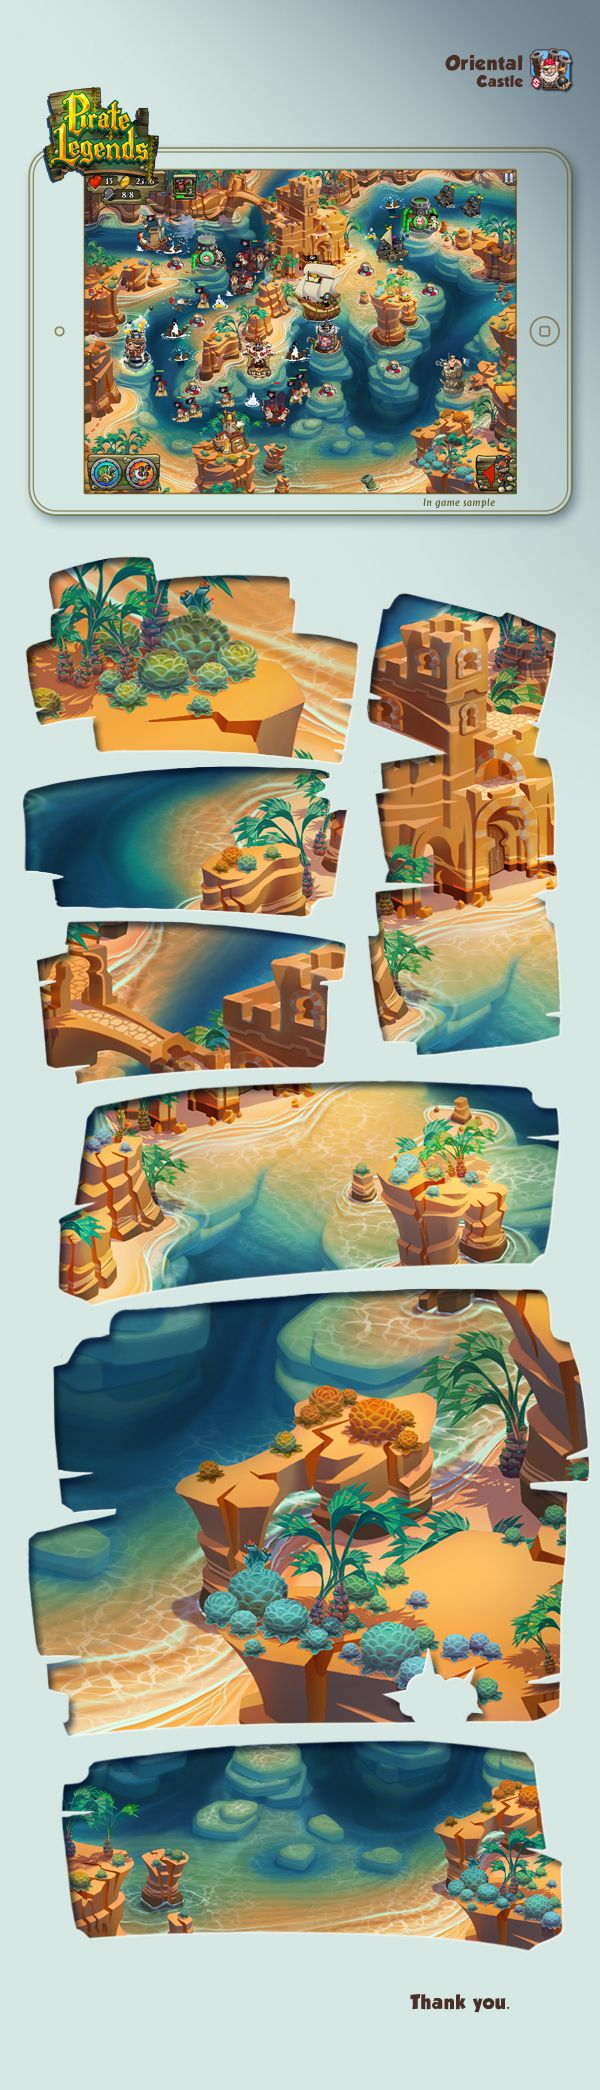 Pirate Legends Backgrounds